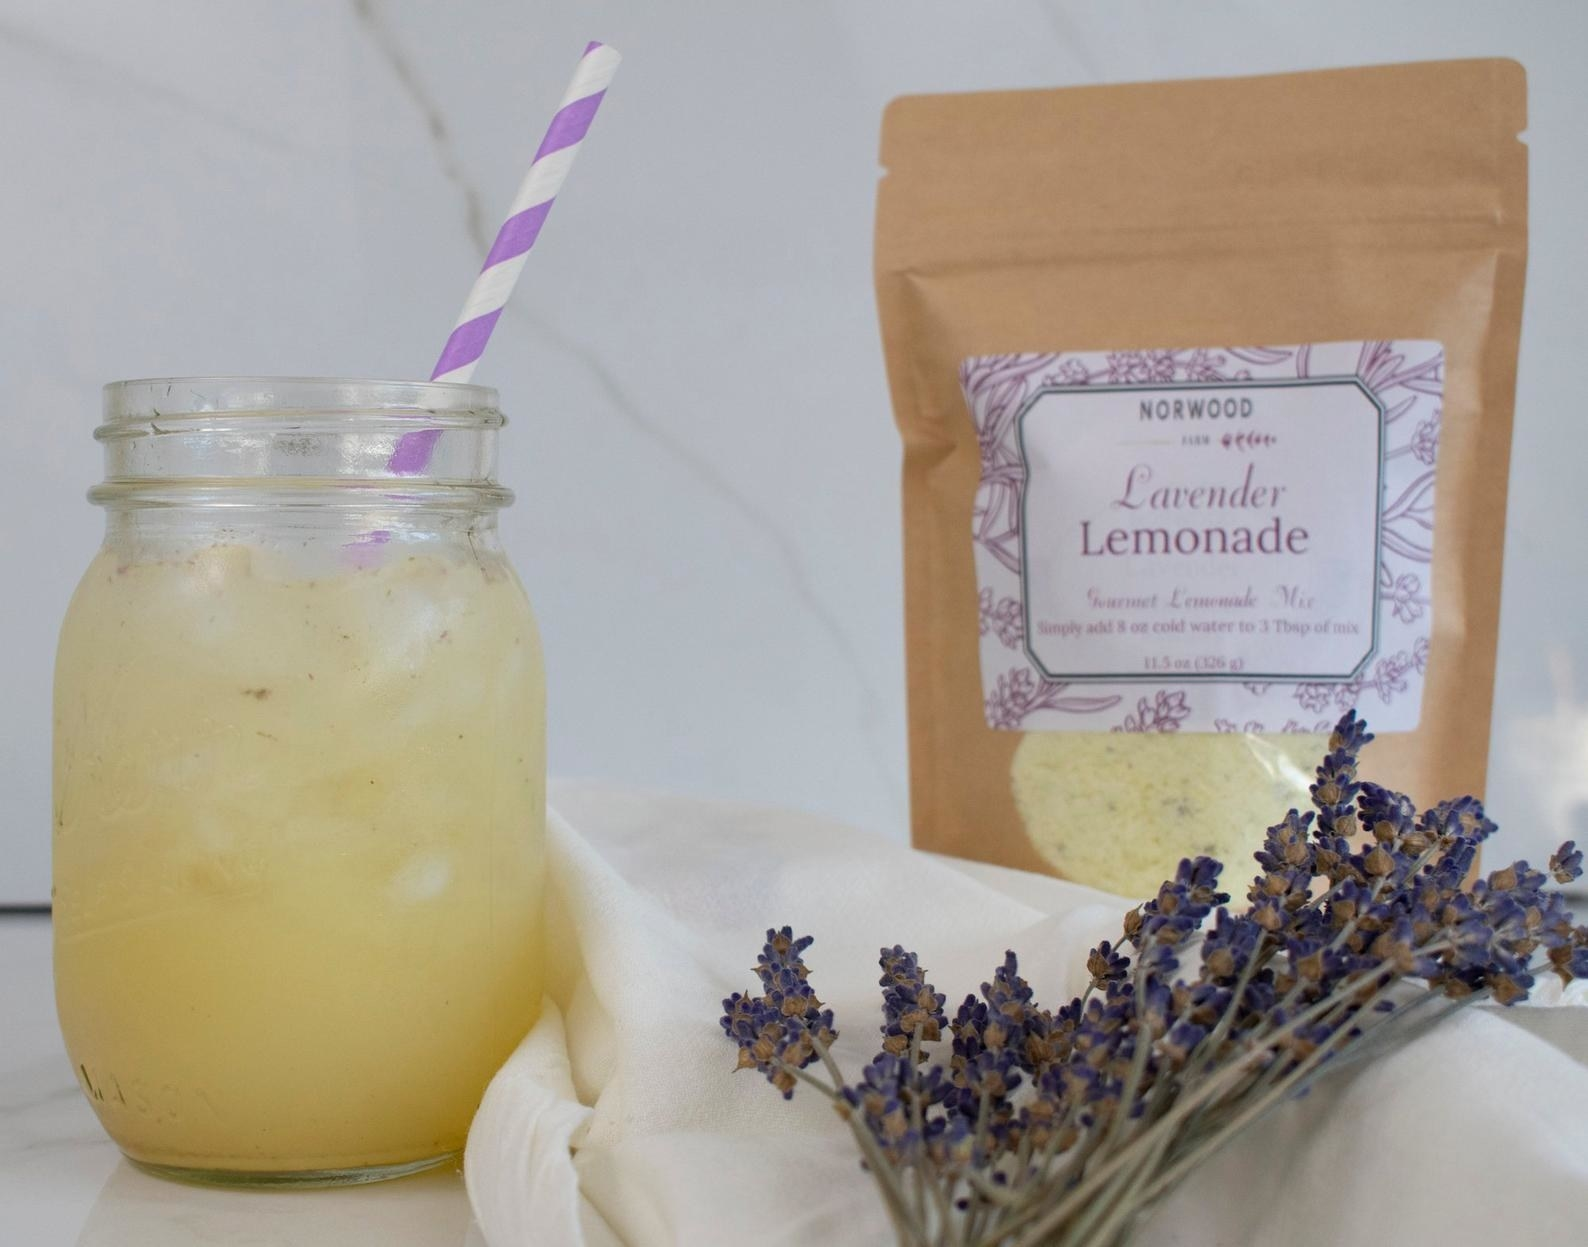 A packet of lavender lemonade with a glass of it already mixed in